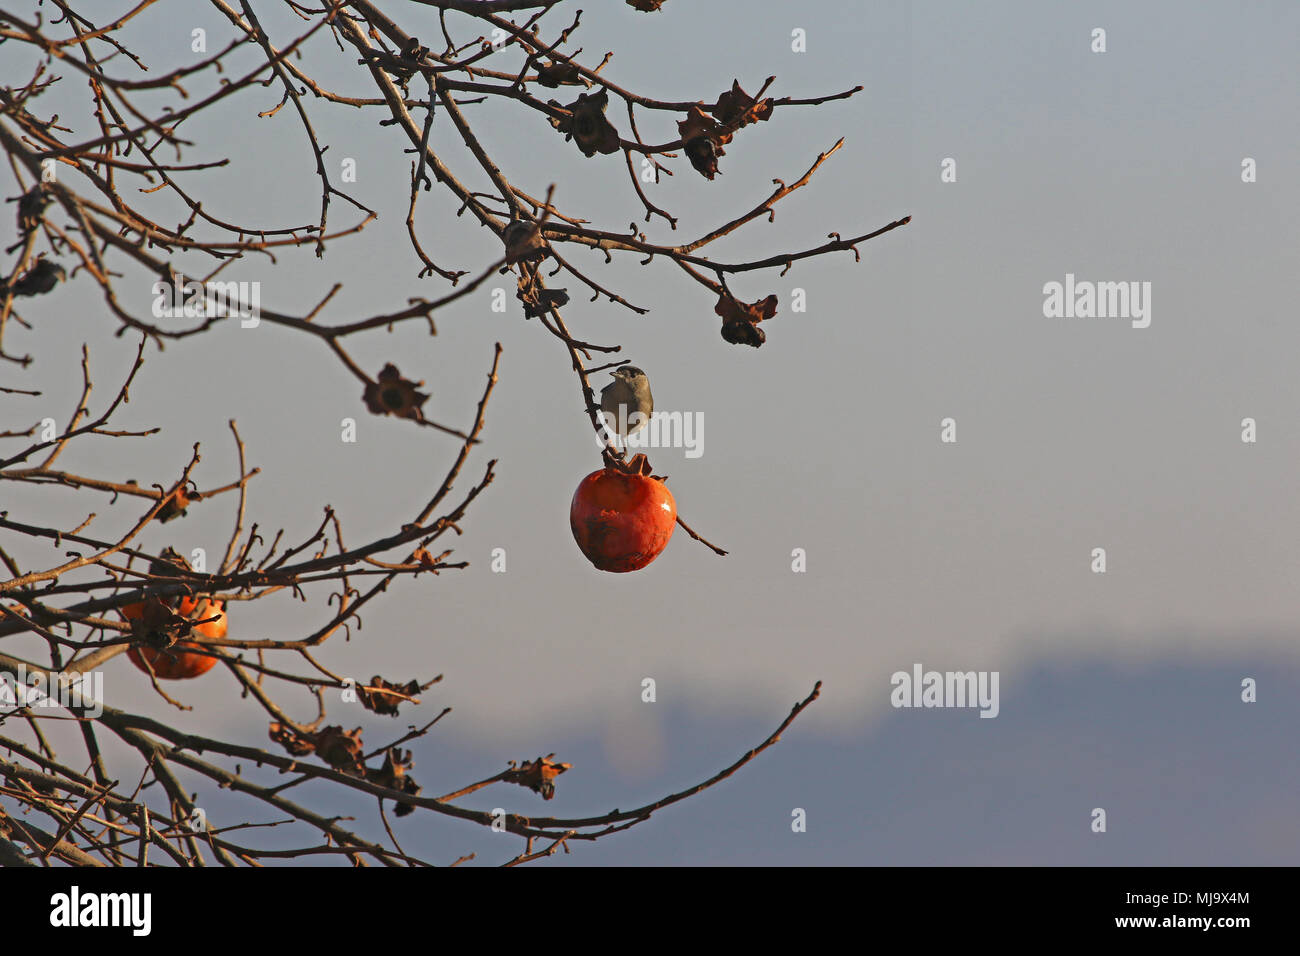 male blackcap with black head Latin sylvia atricapilla feeding in a persimmon tree in Italy in winter - Stock Image